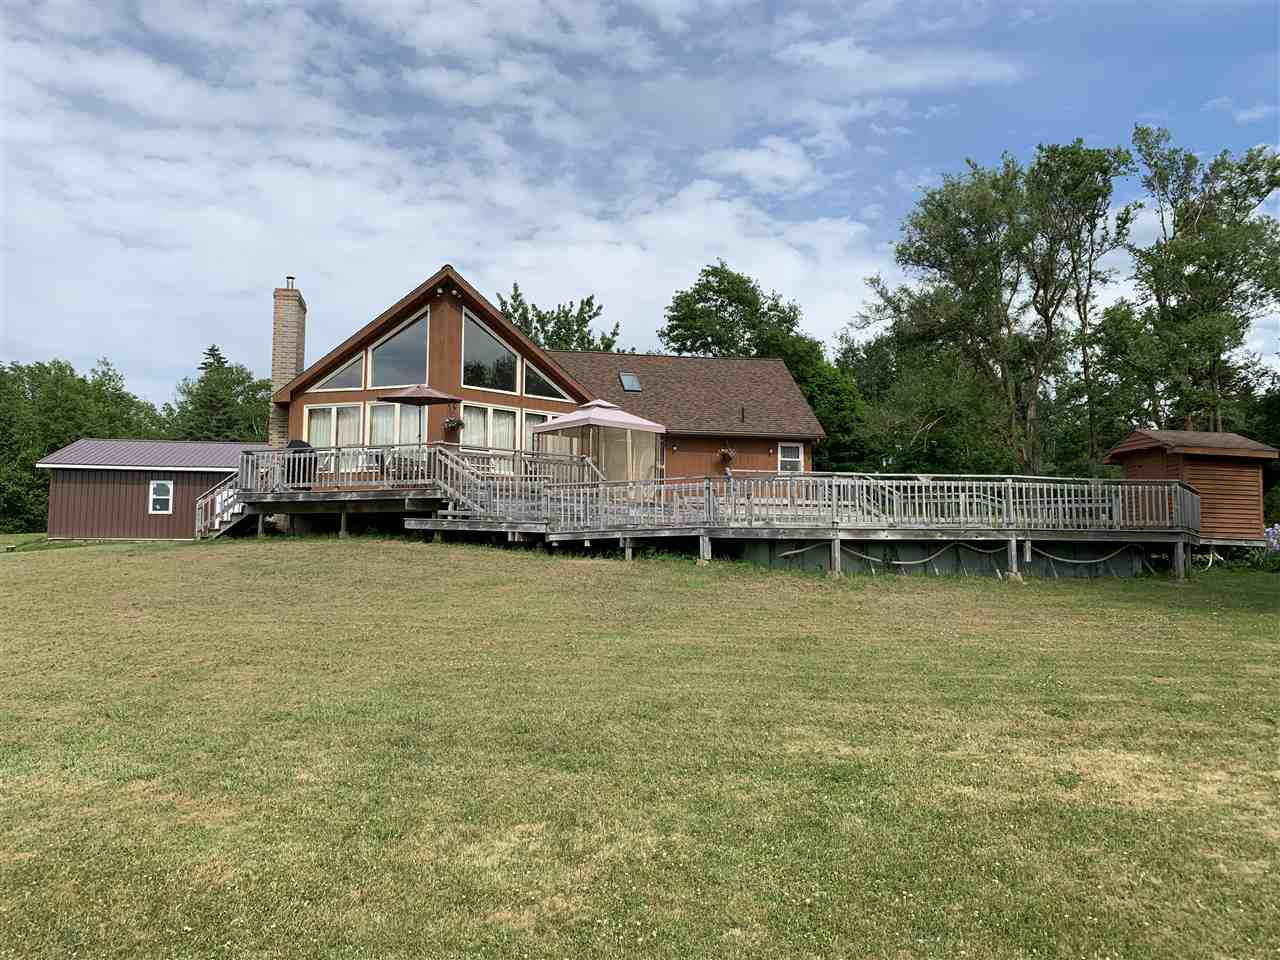 Main Photo: 6061 Pictou Landing Road in Pictou Landing: 108-Rural Pictou County Residential for sale (Northern Region)  : MLS®# 202011575